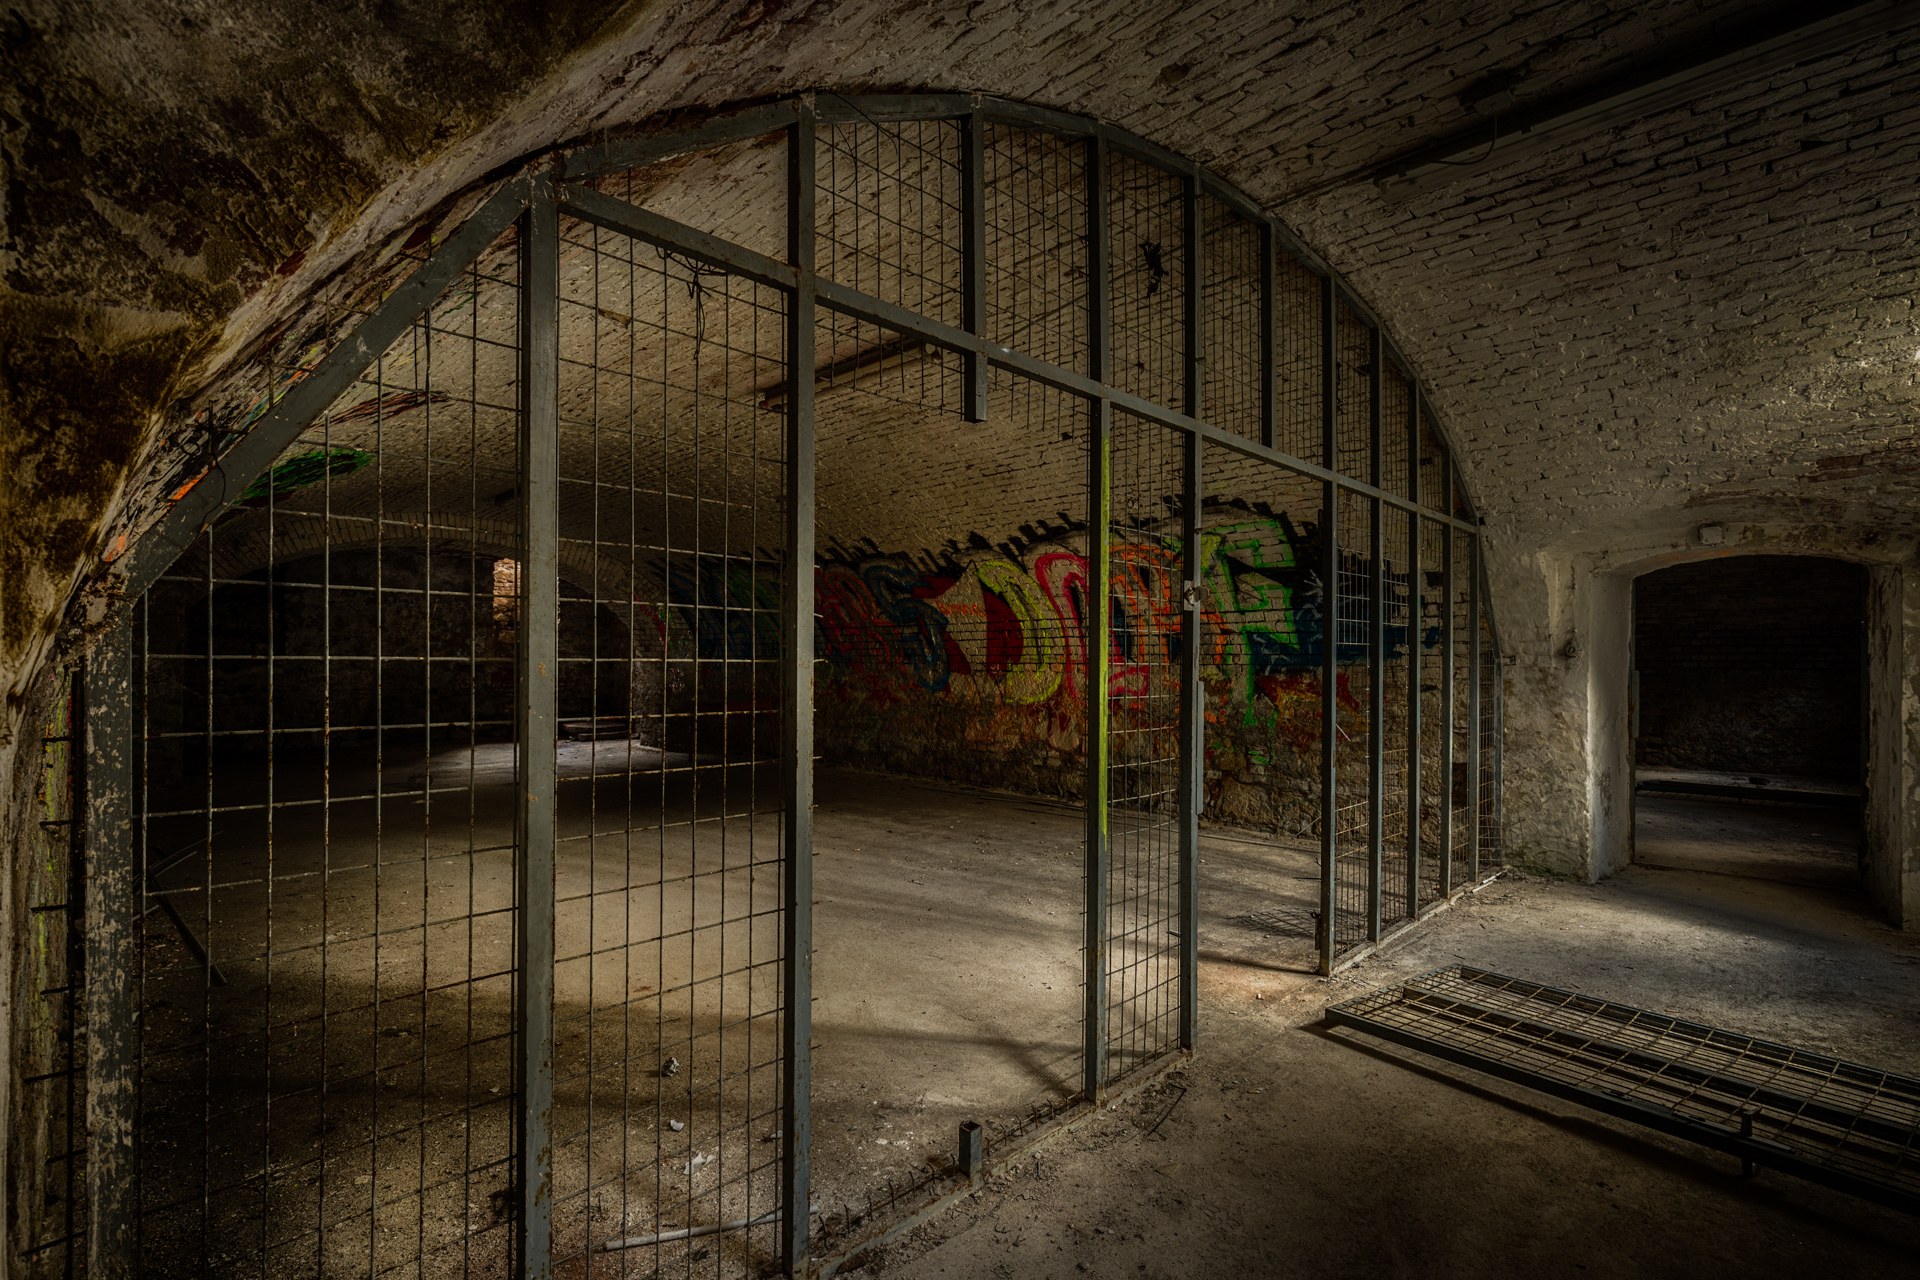 Urban Exploration - Military Peace - Prison Break